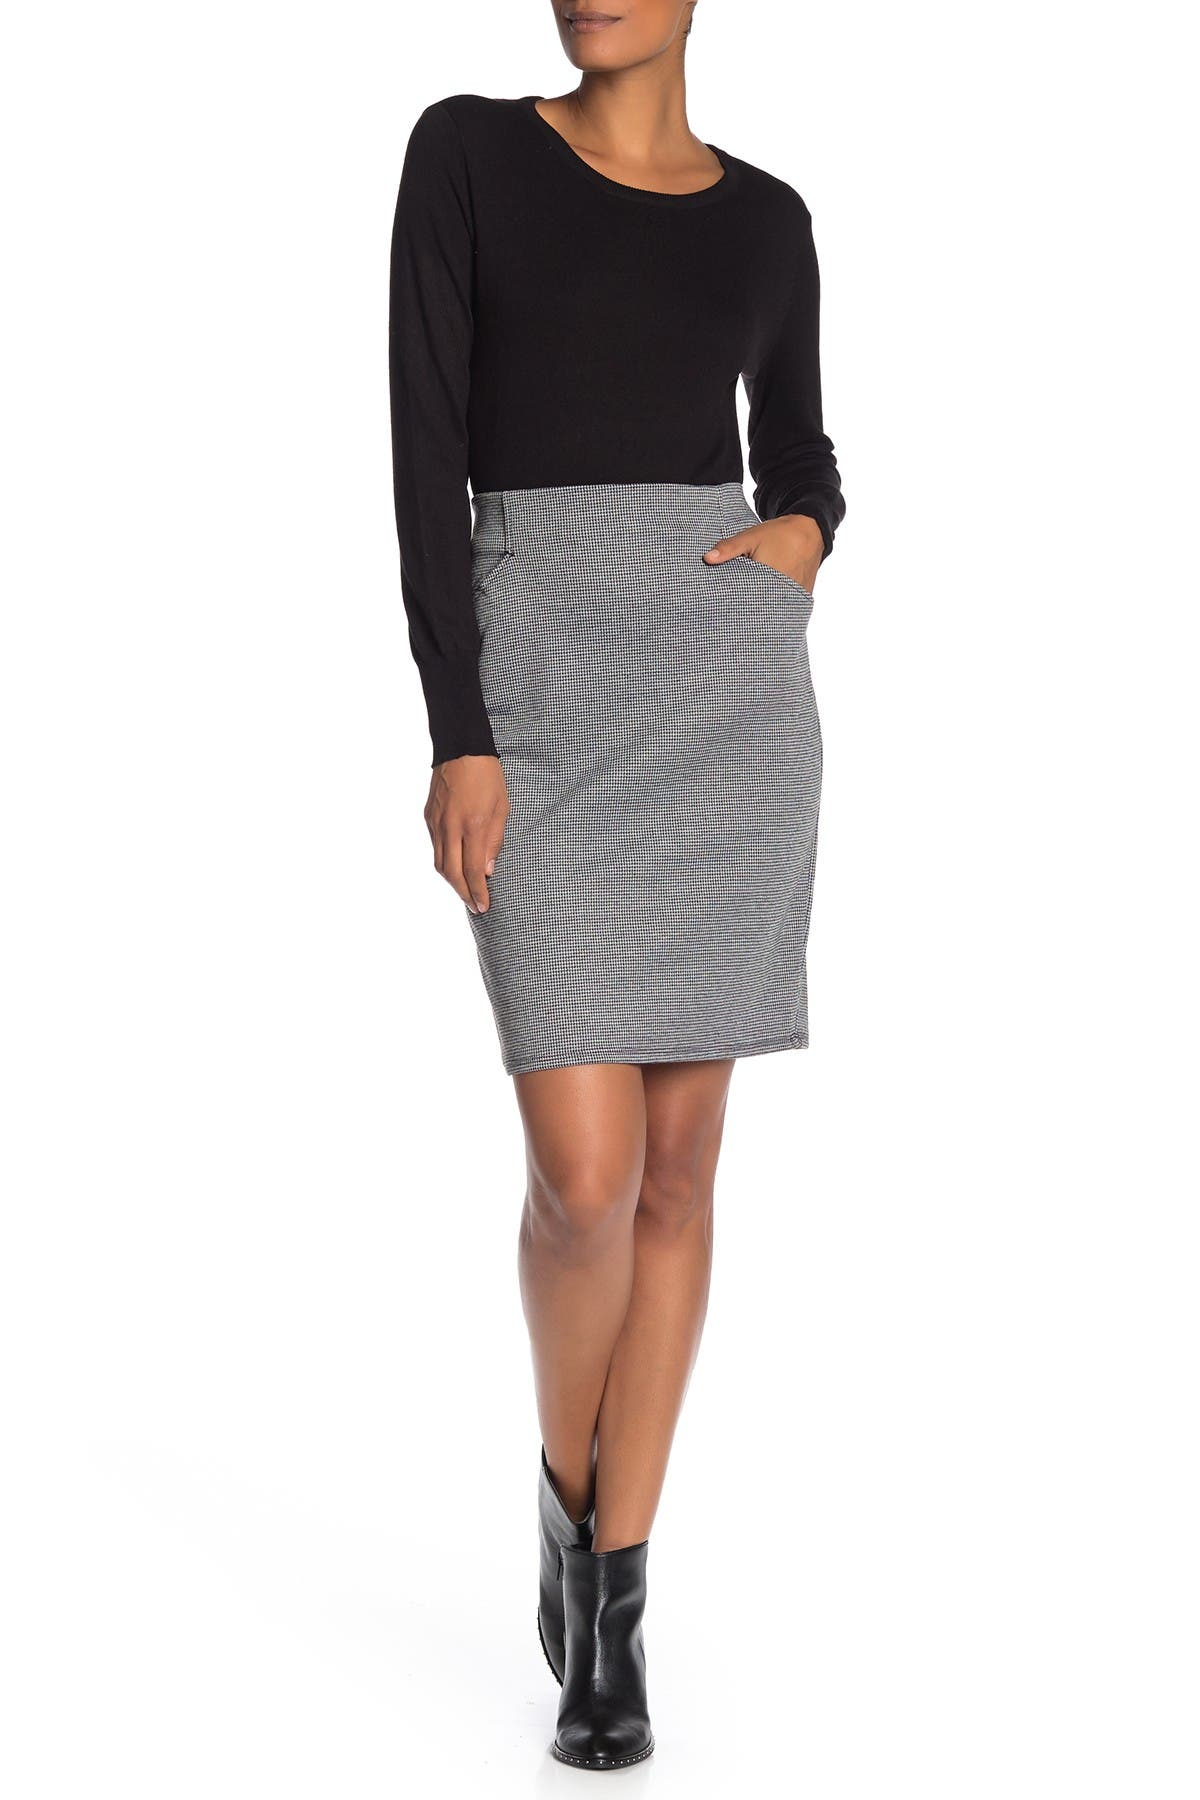 Image of Max Studio Houndstooth Knit Pencil Skirt